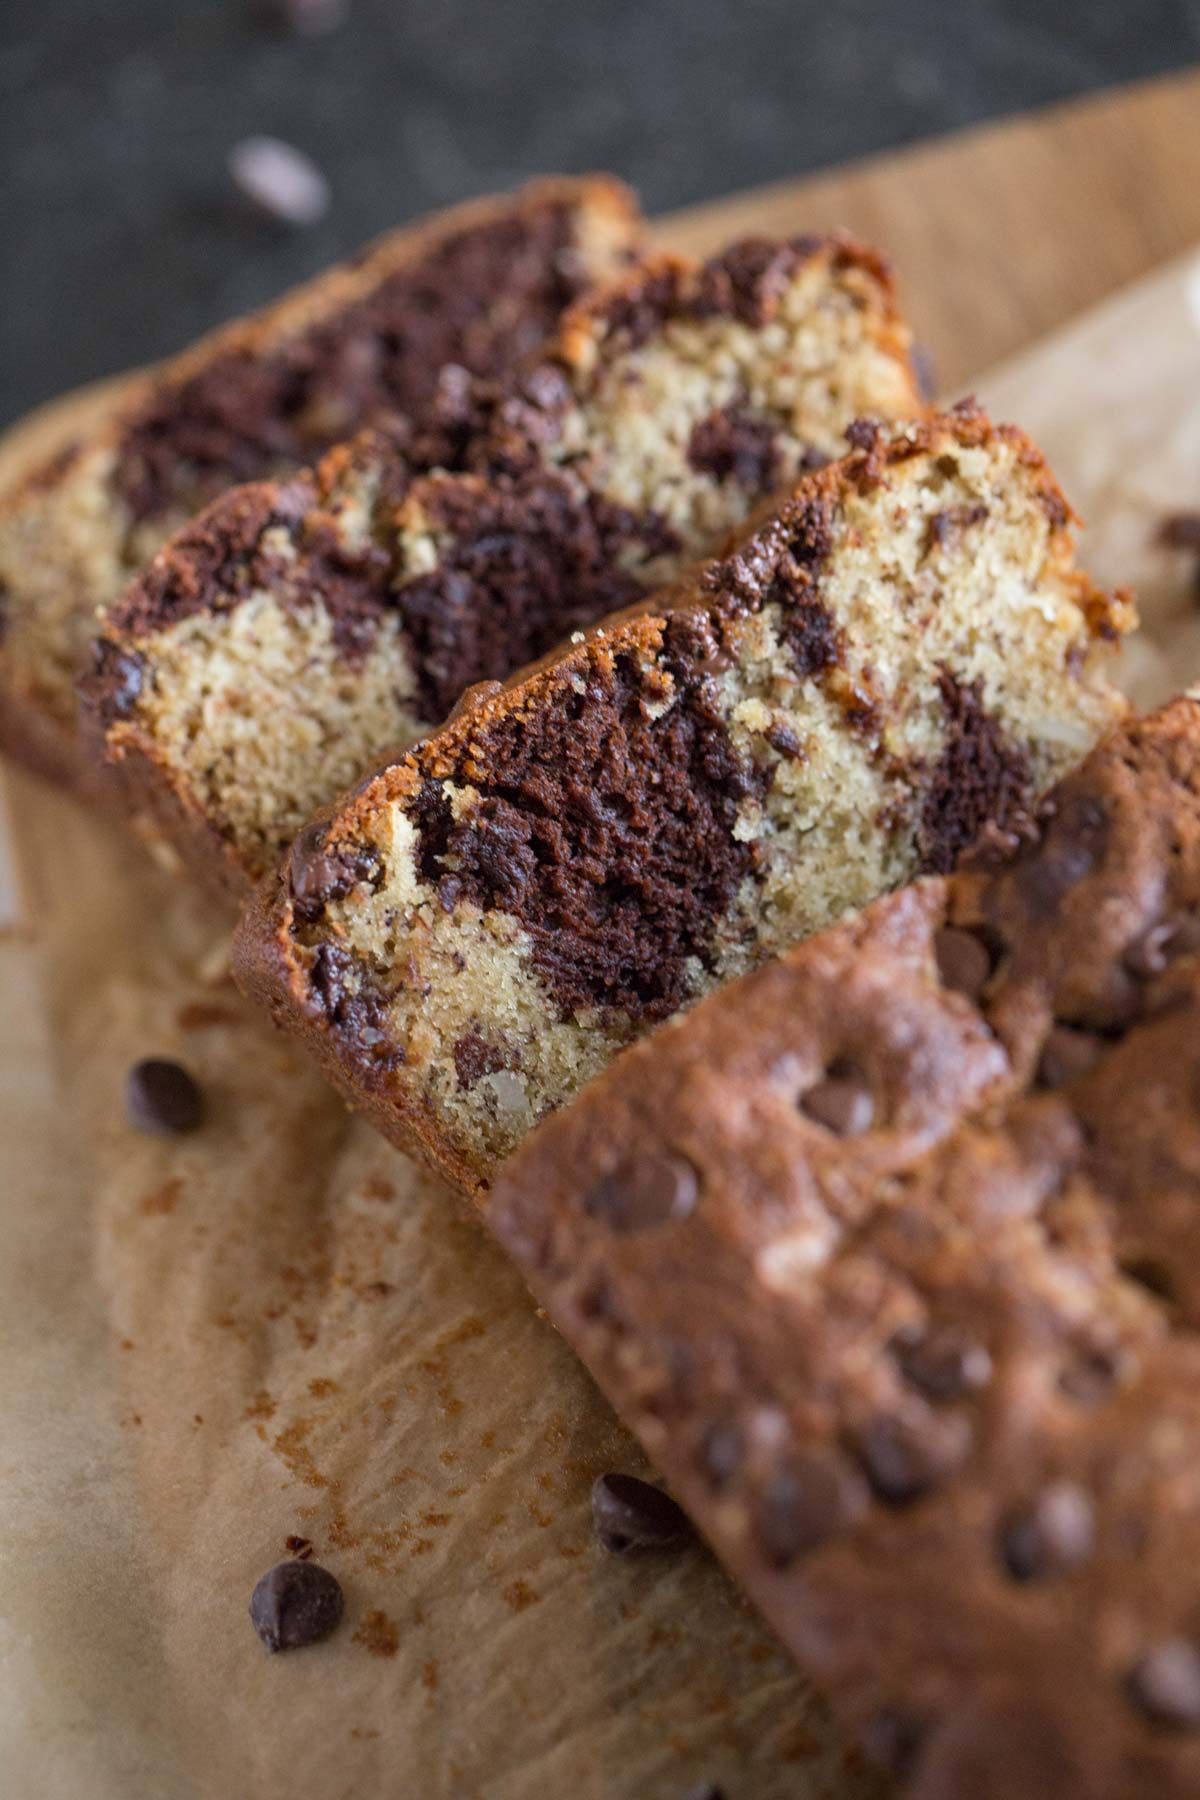 A loaf of Marbled Chocolate Banana Bread that has been sliced.